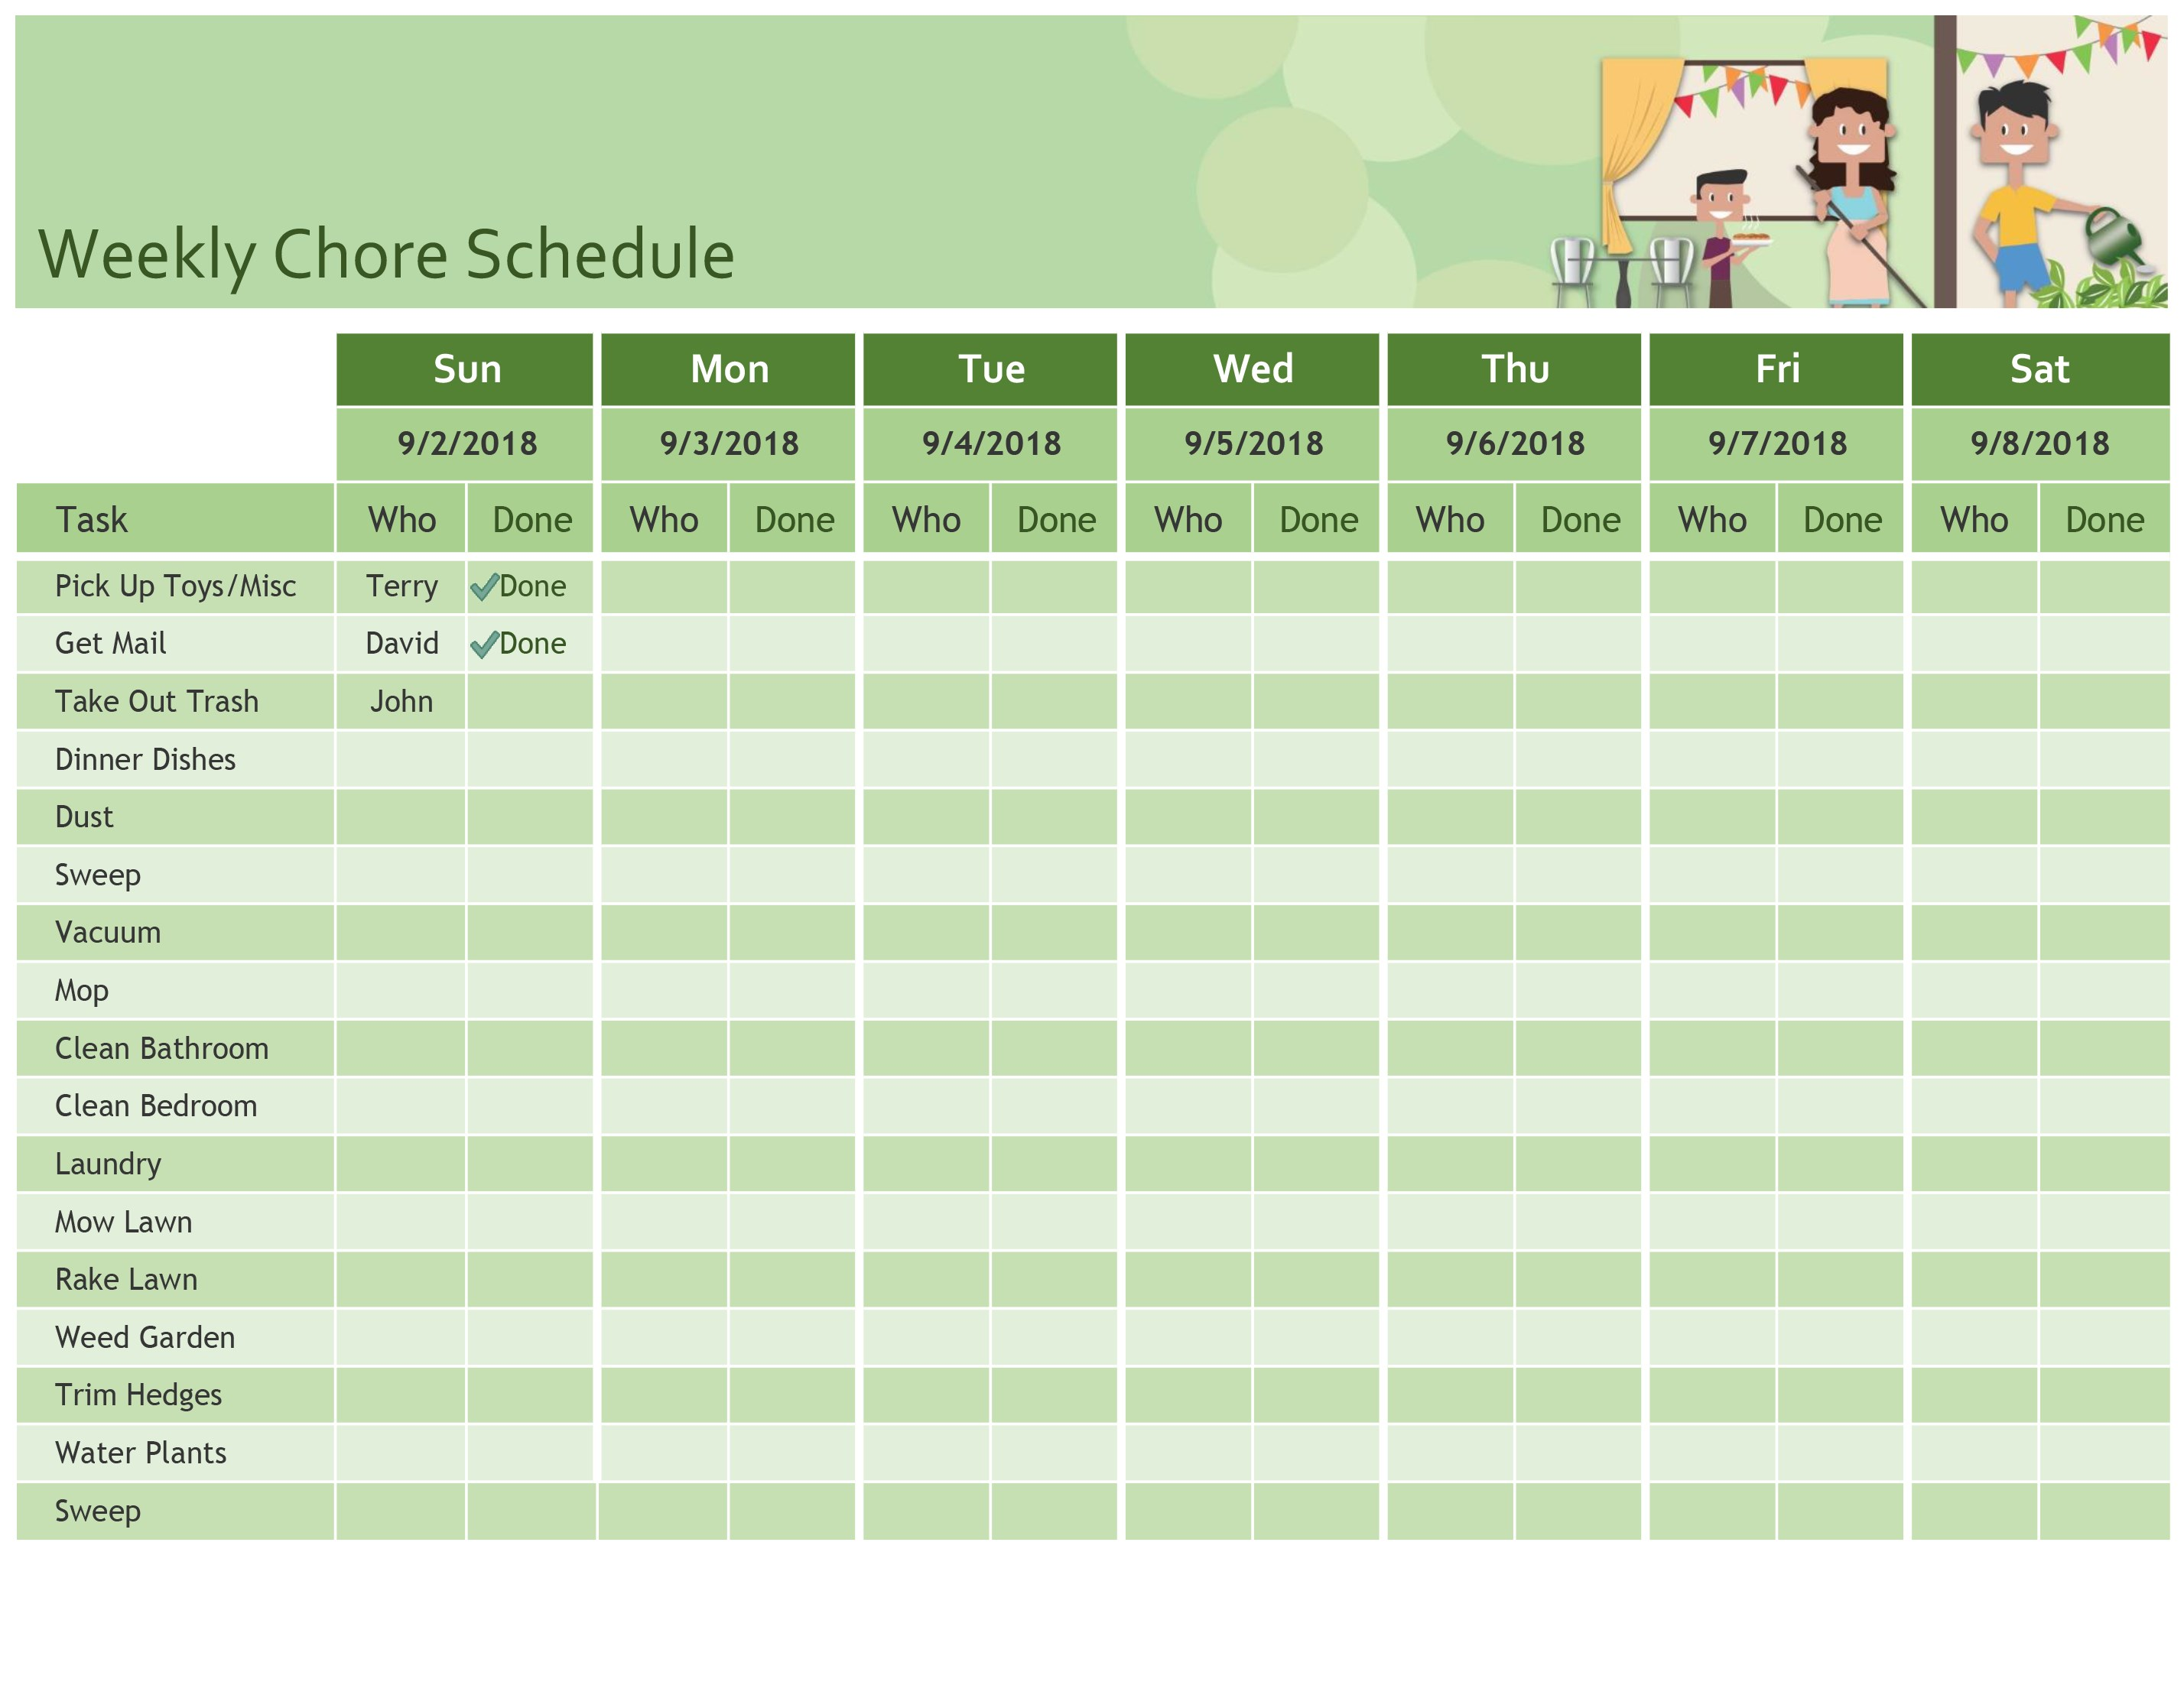 Download Weekly Employee Shift Schedule Template Excel With Weekly Employee Shift Schedule Template Excel Download For Free